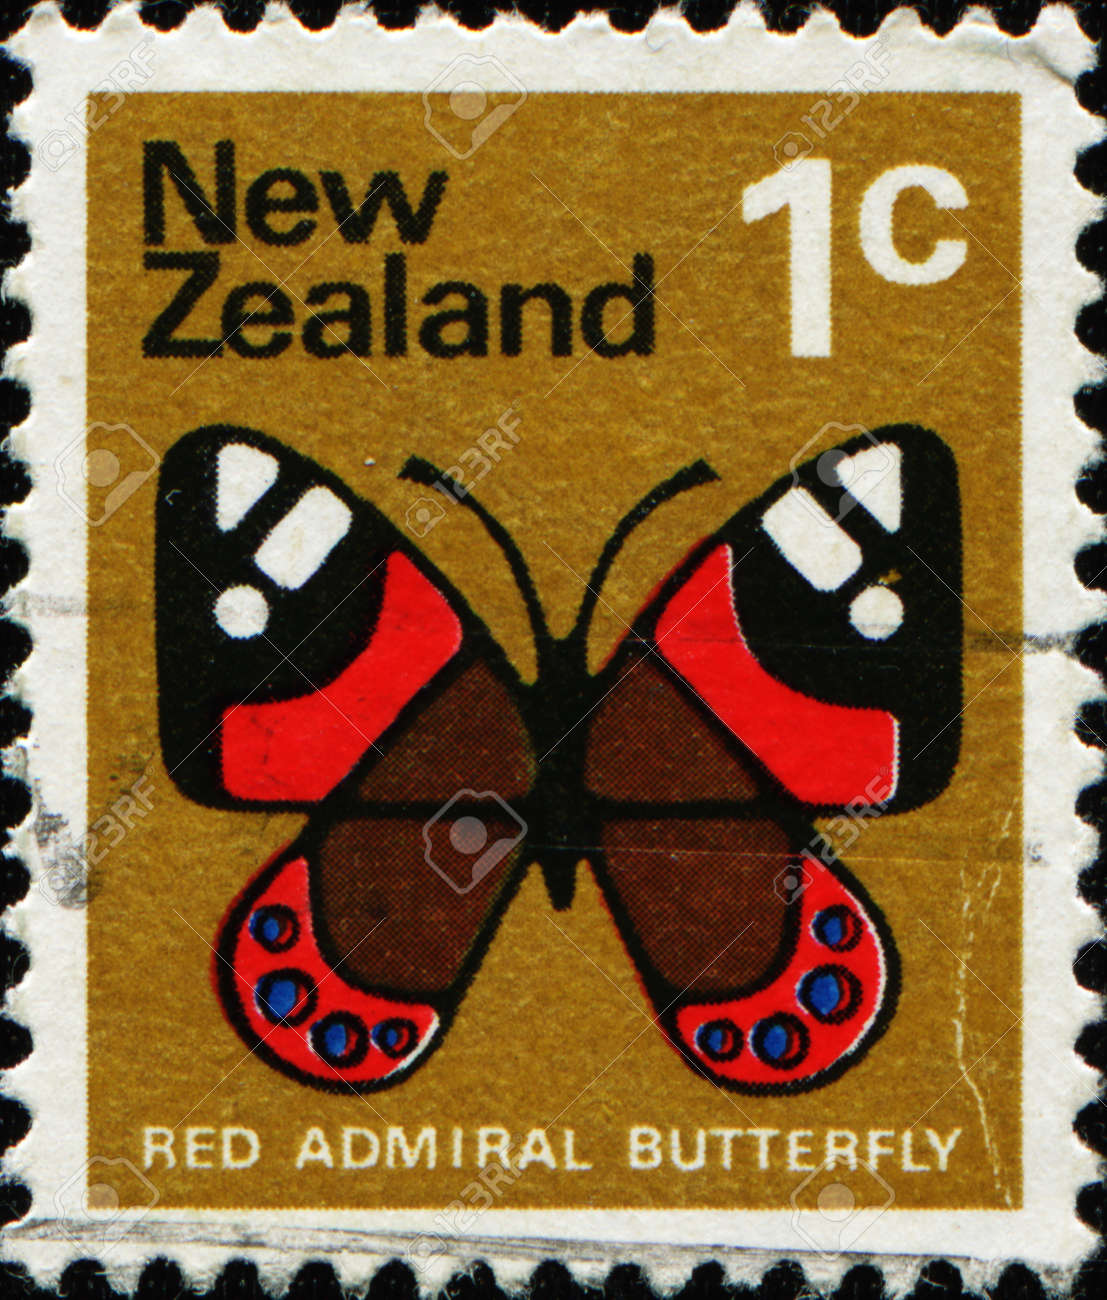 NEW ZEALAND - CIRCA 1970: A stamp printed in New Zealand shows image of a red admiral butterfly, series, circa 1970 Stock Photo - 11574012